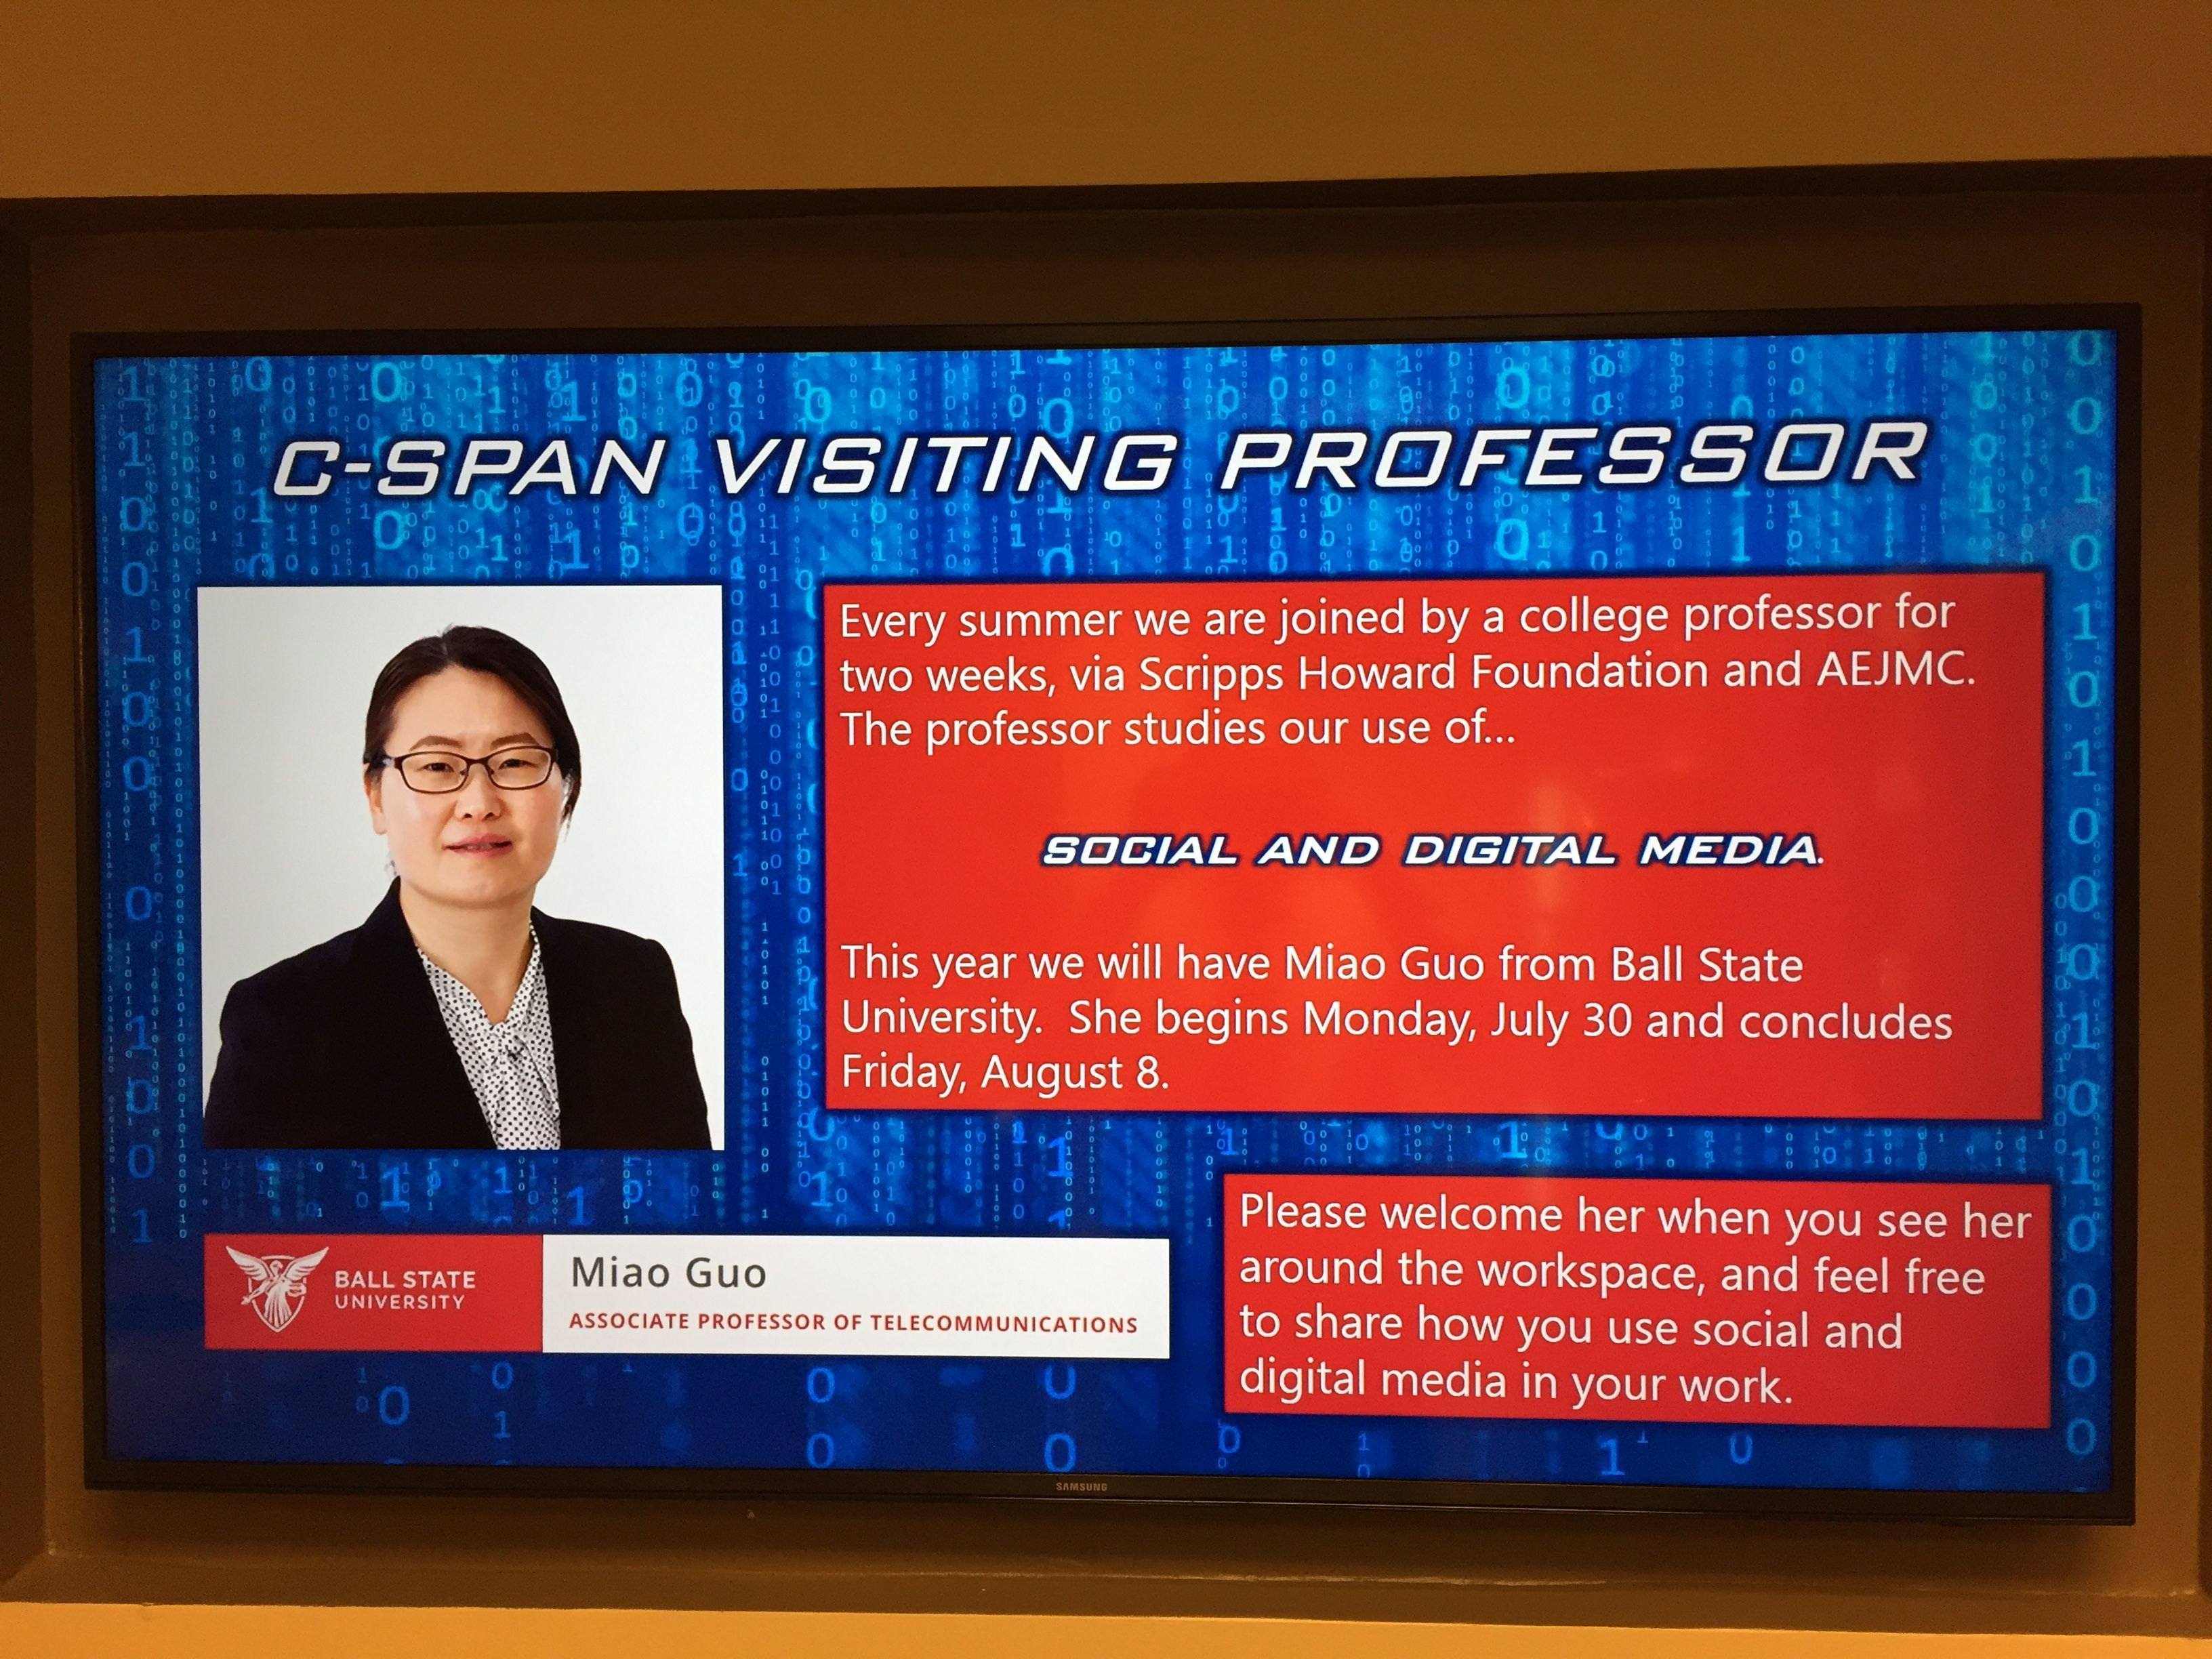 C-SPAN welcomes SHF Visiting Professor Miao Guo from Ball